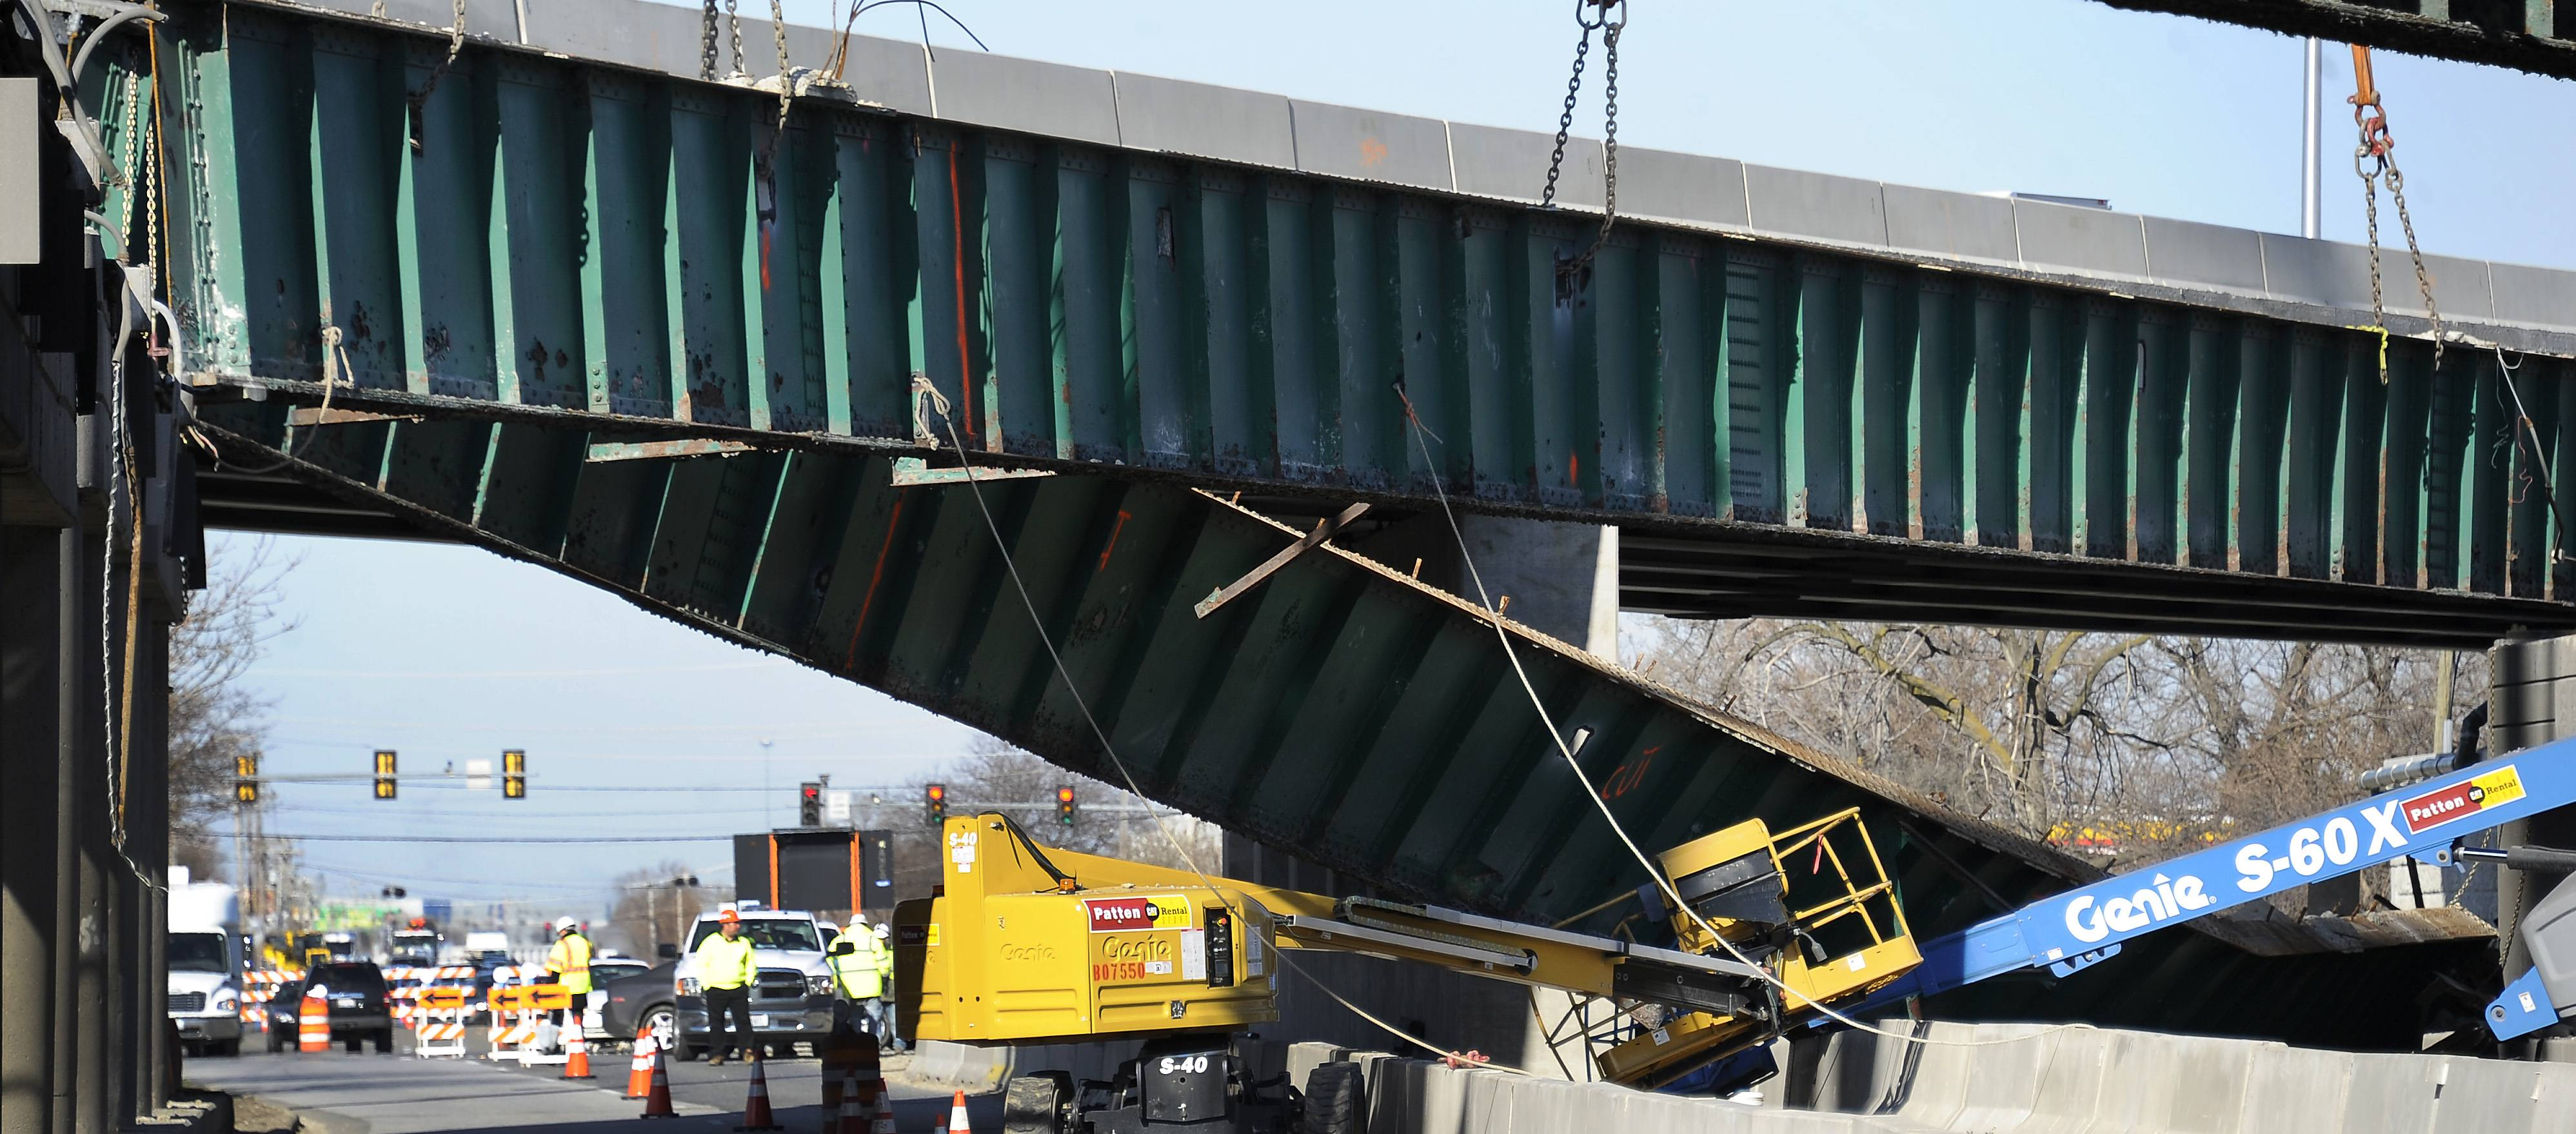 Could beam disaster occur again on toll roads?